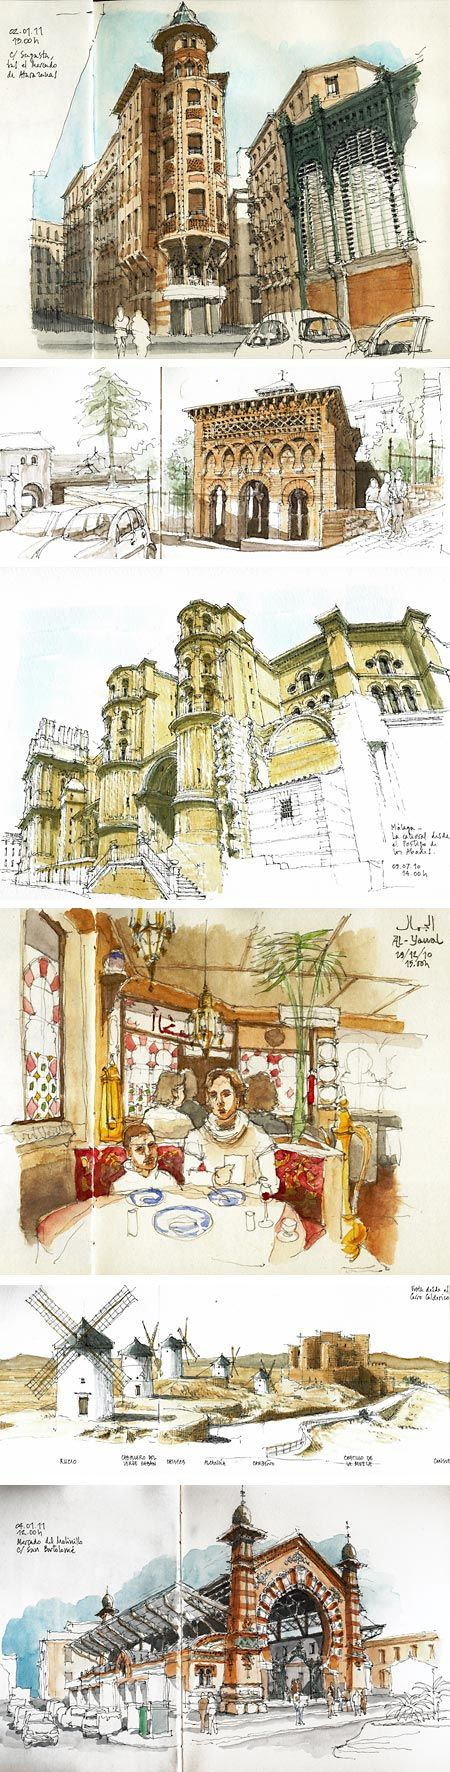 Luis Ruiz is an artist from Málaga, Spain who draws wonderful location sketches, particularly of architectural subjects.